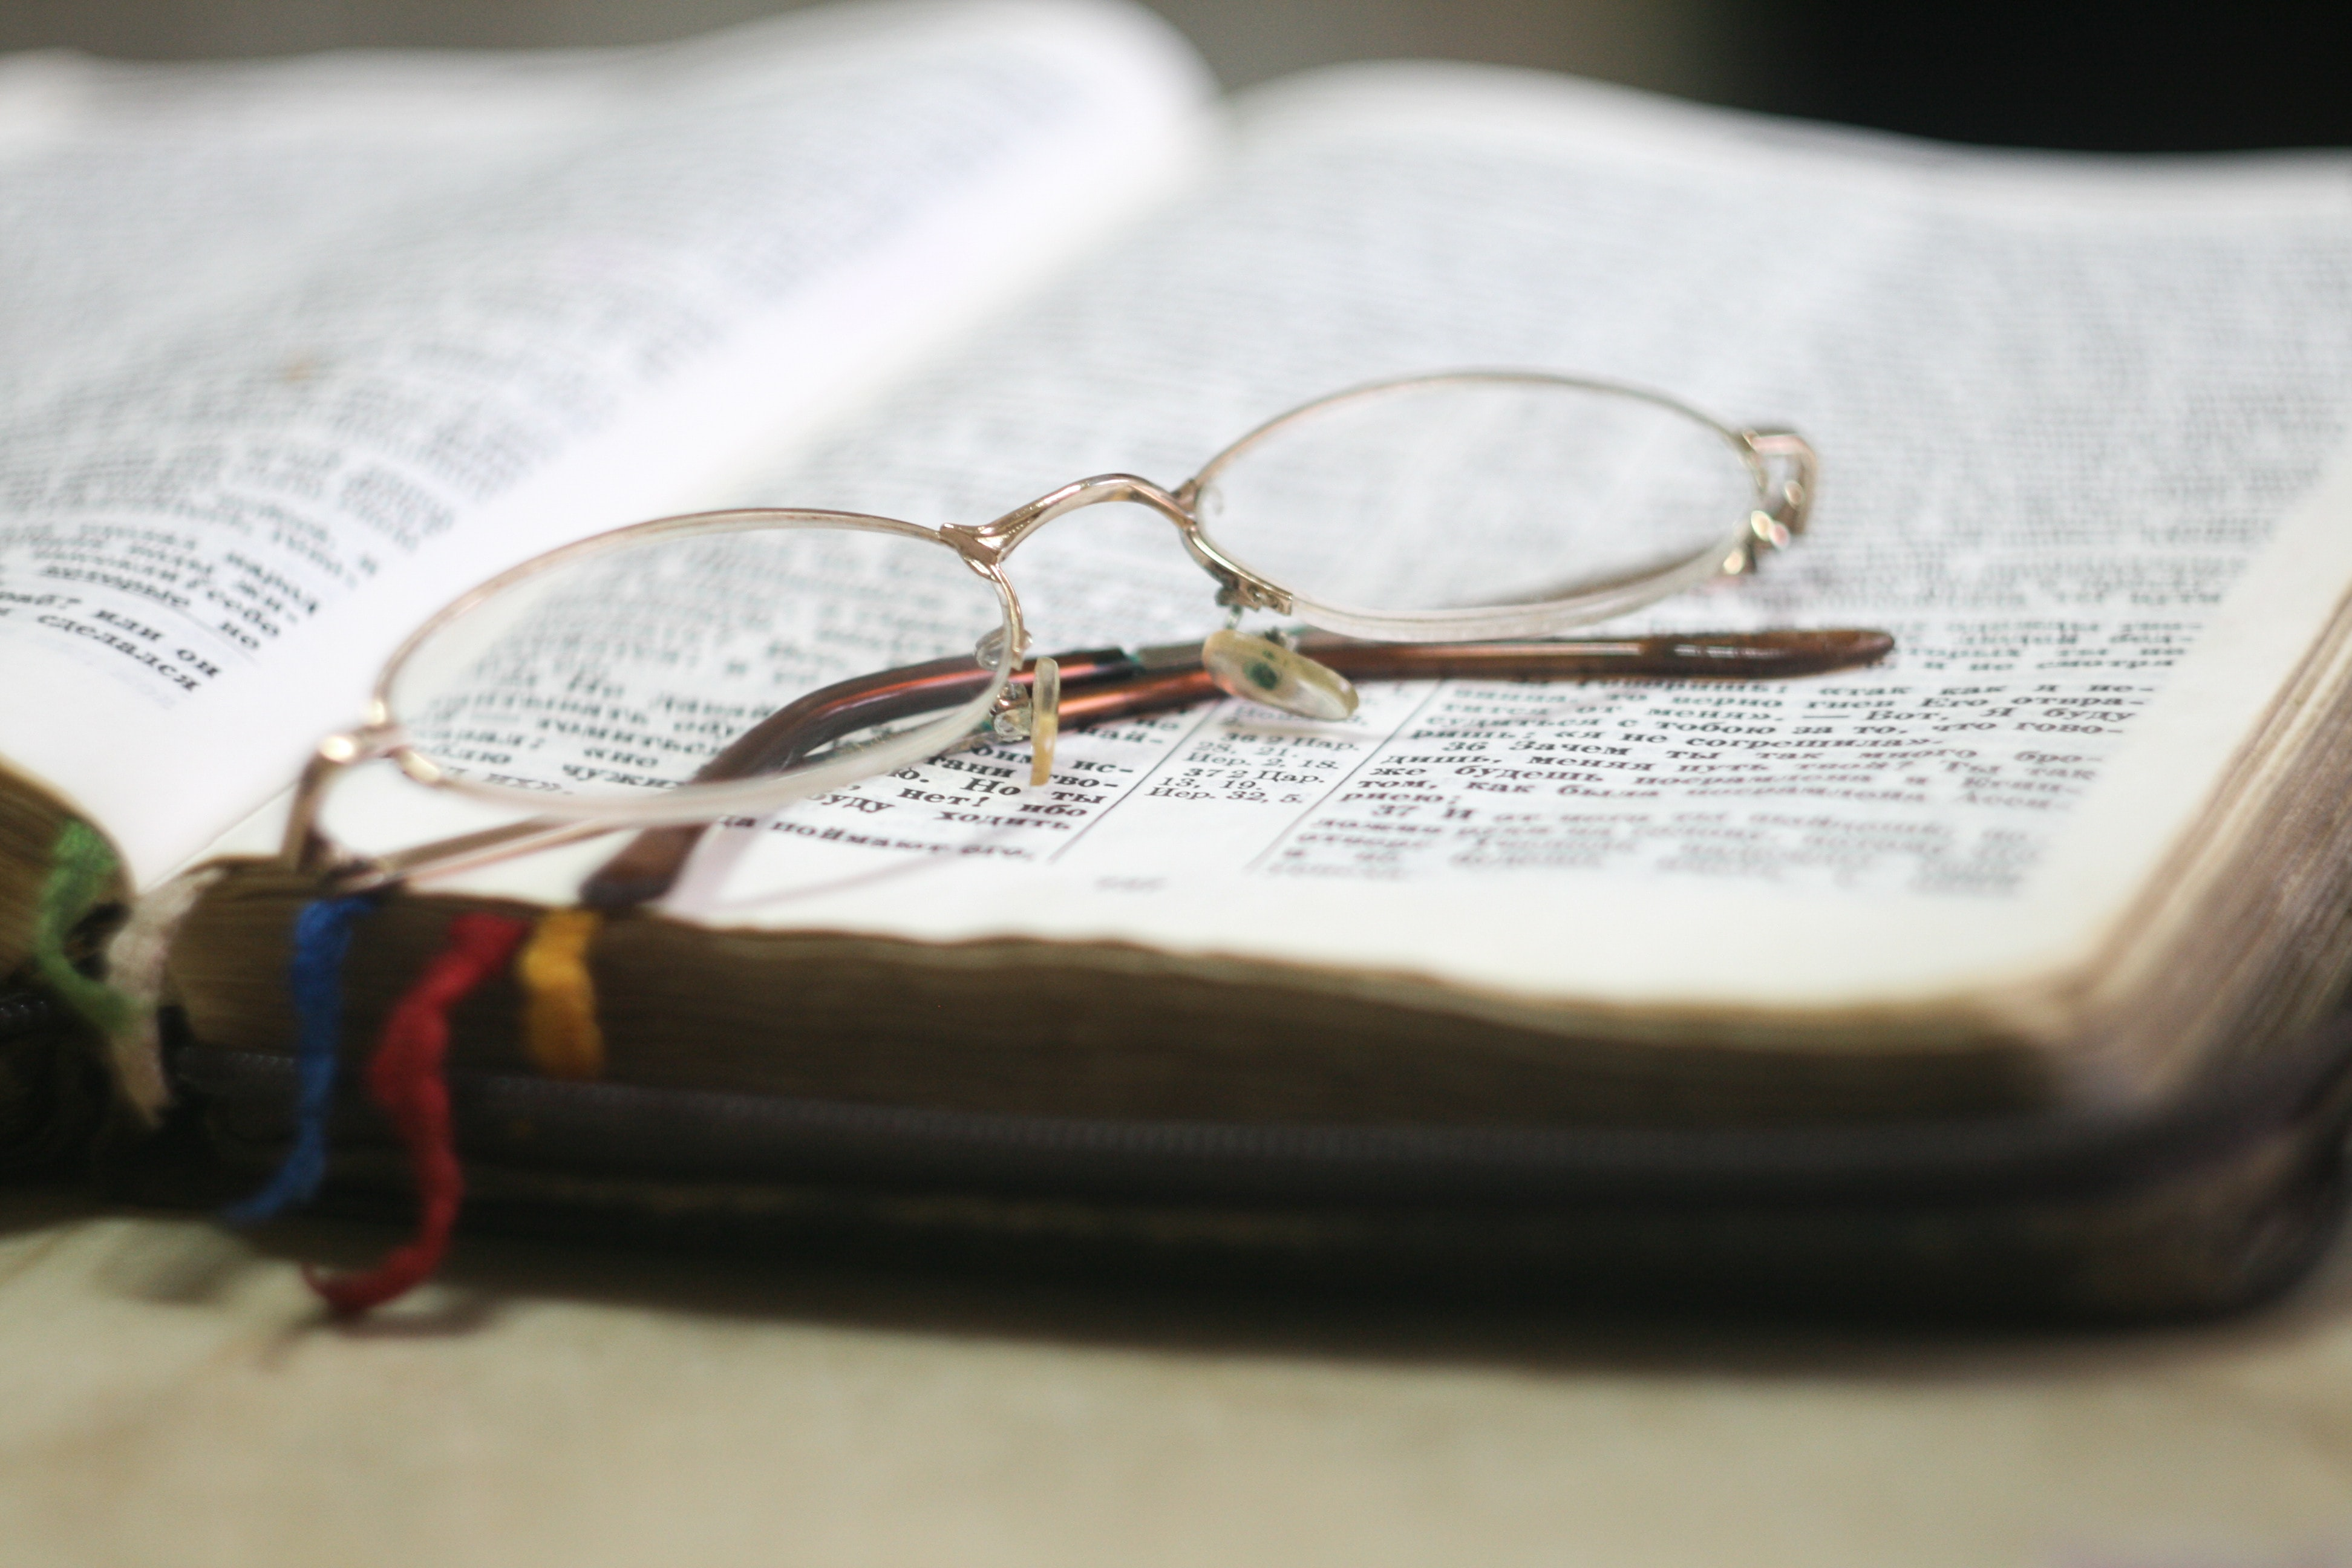 A pair of reading glasses on top of a book.